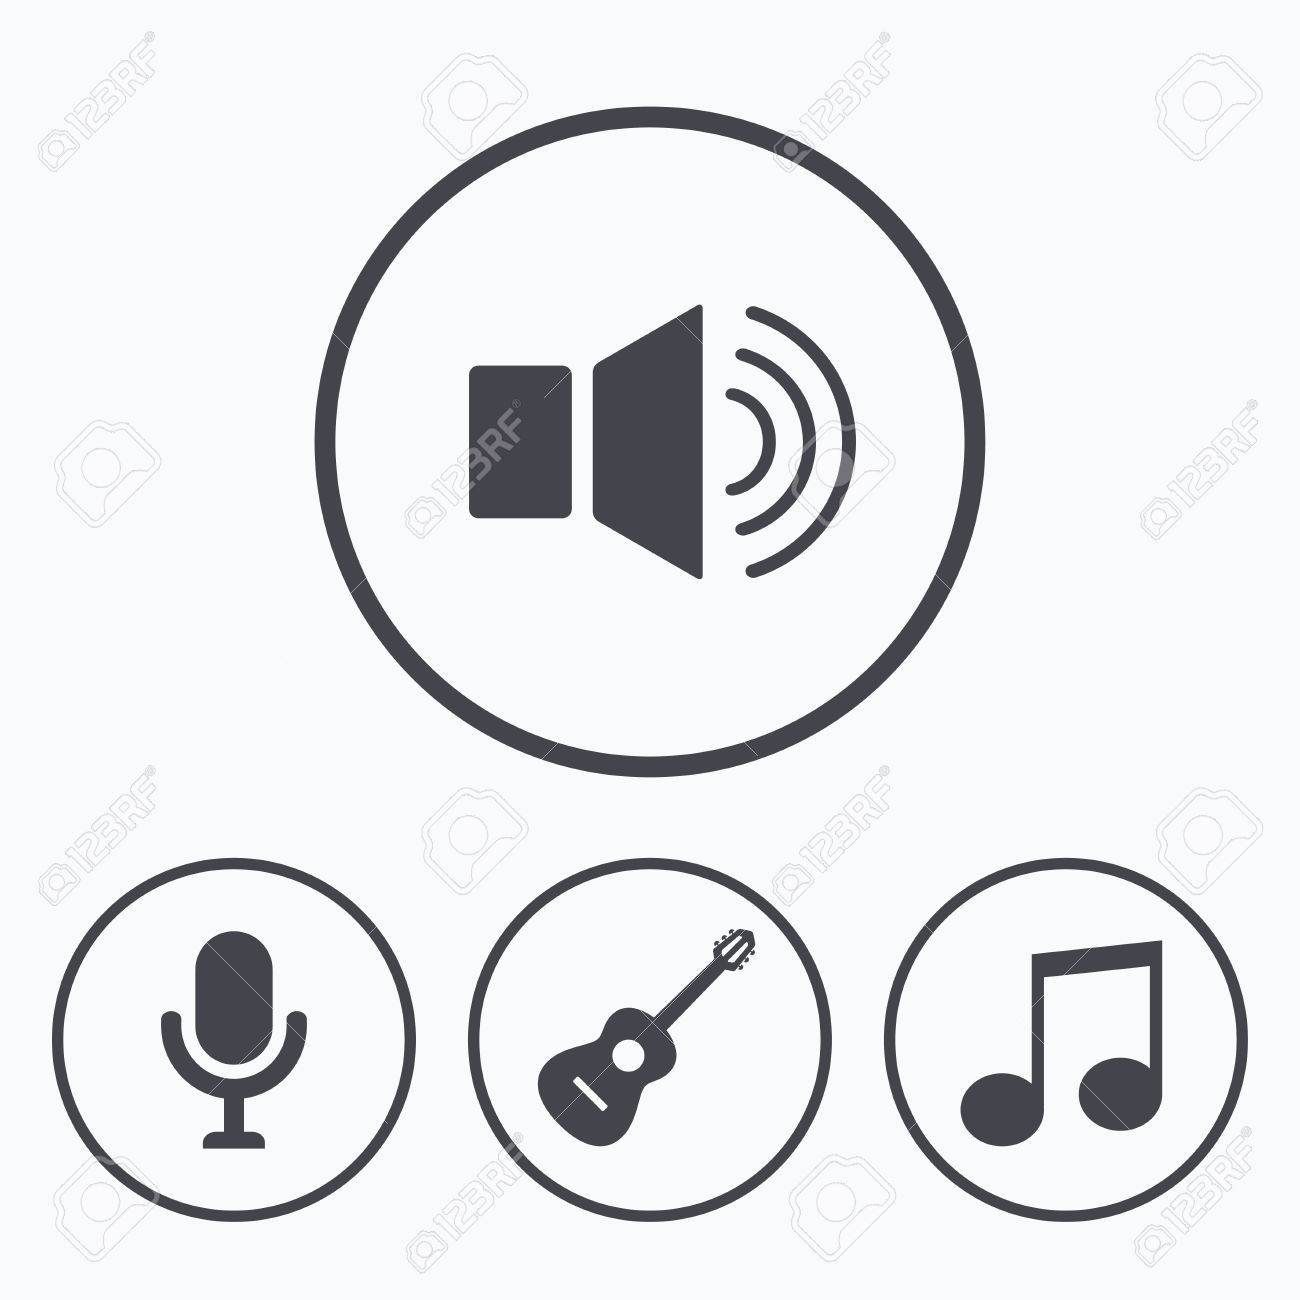 Symbol music note image collections symbol and sign ideas musical elements icons microphone and sound speaker symbols musical elements icons microphone and sound speaker symbols buycottarizona